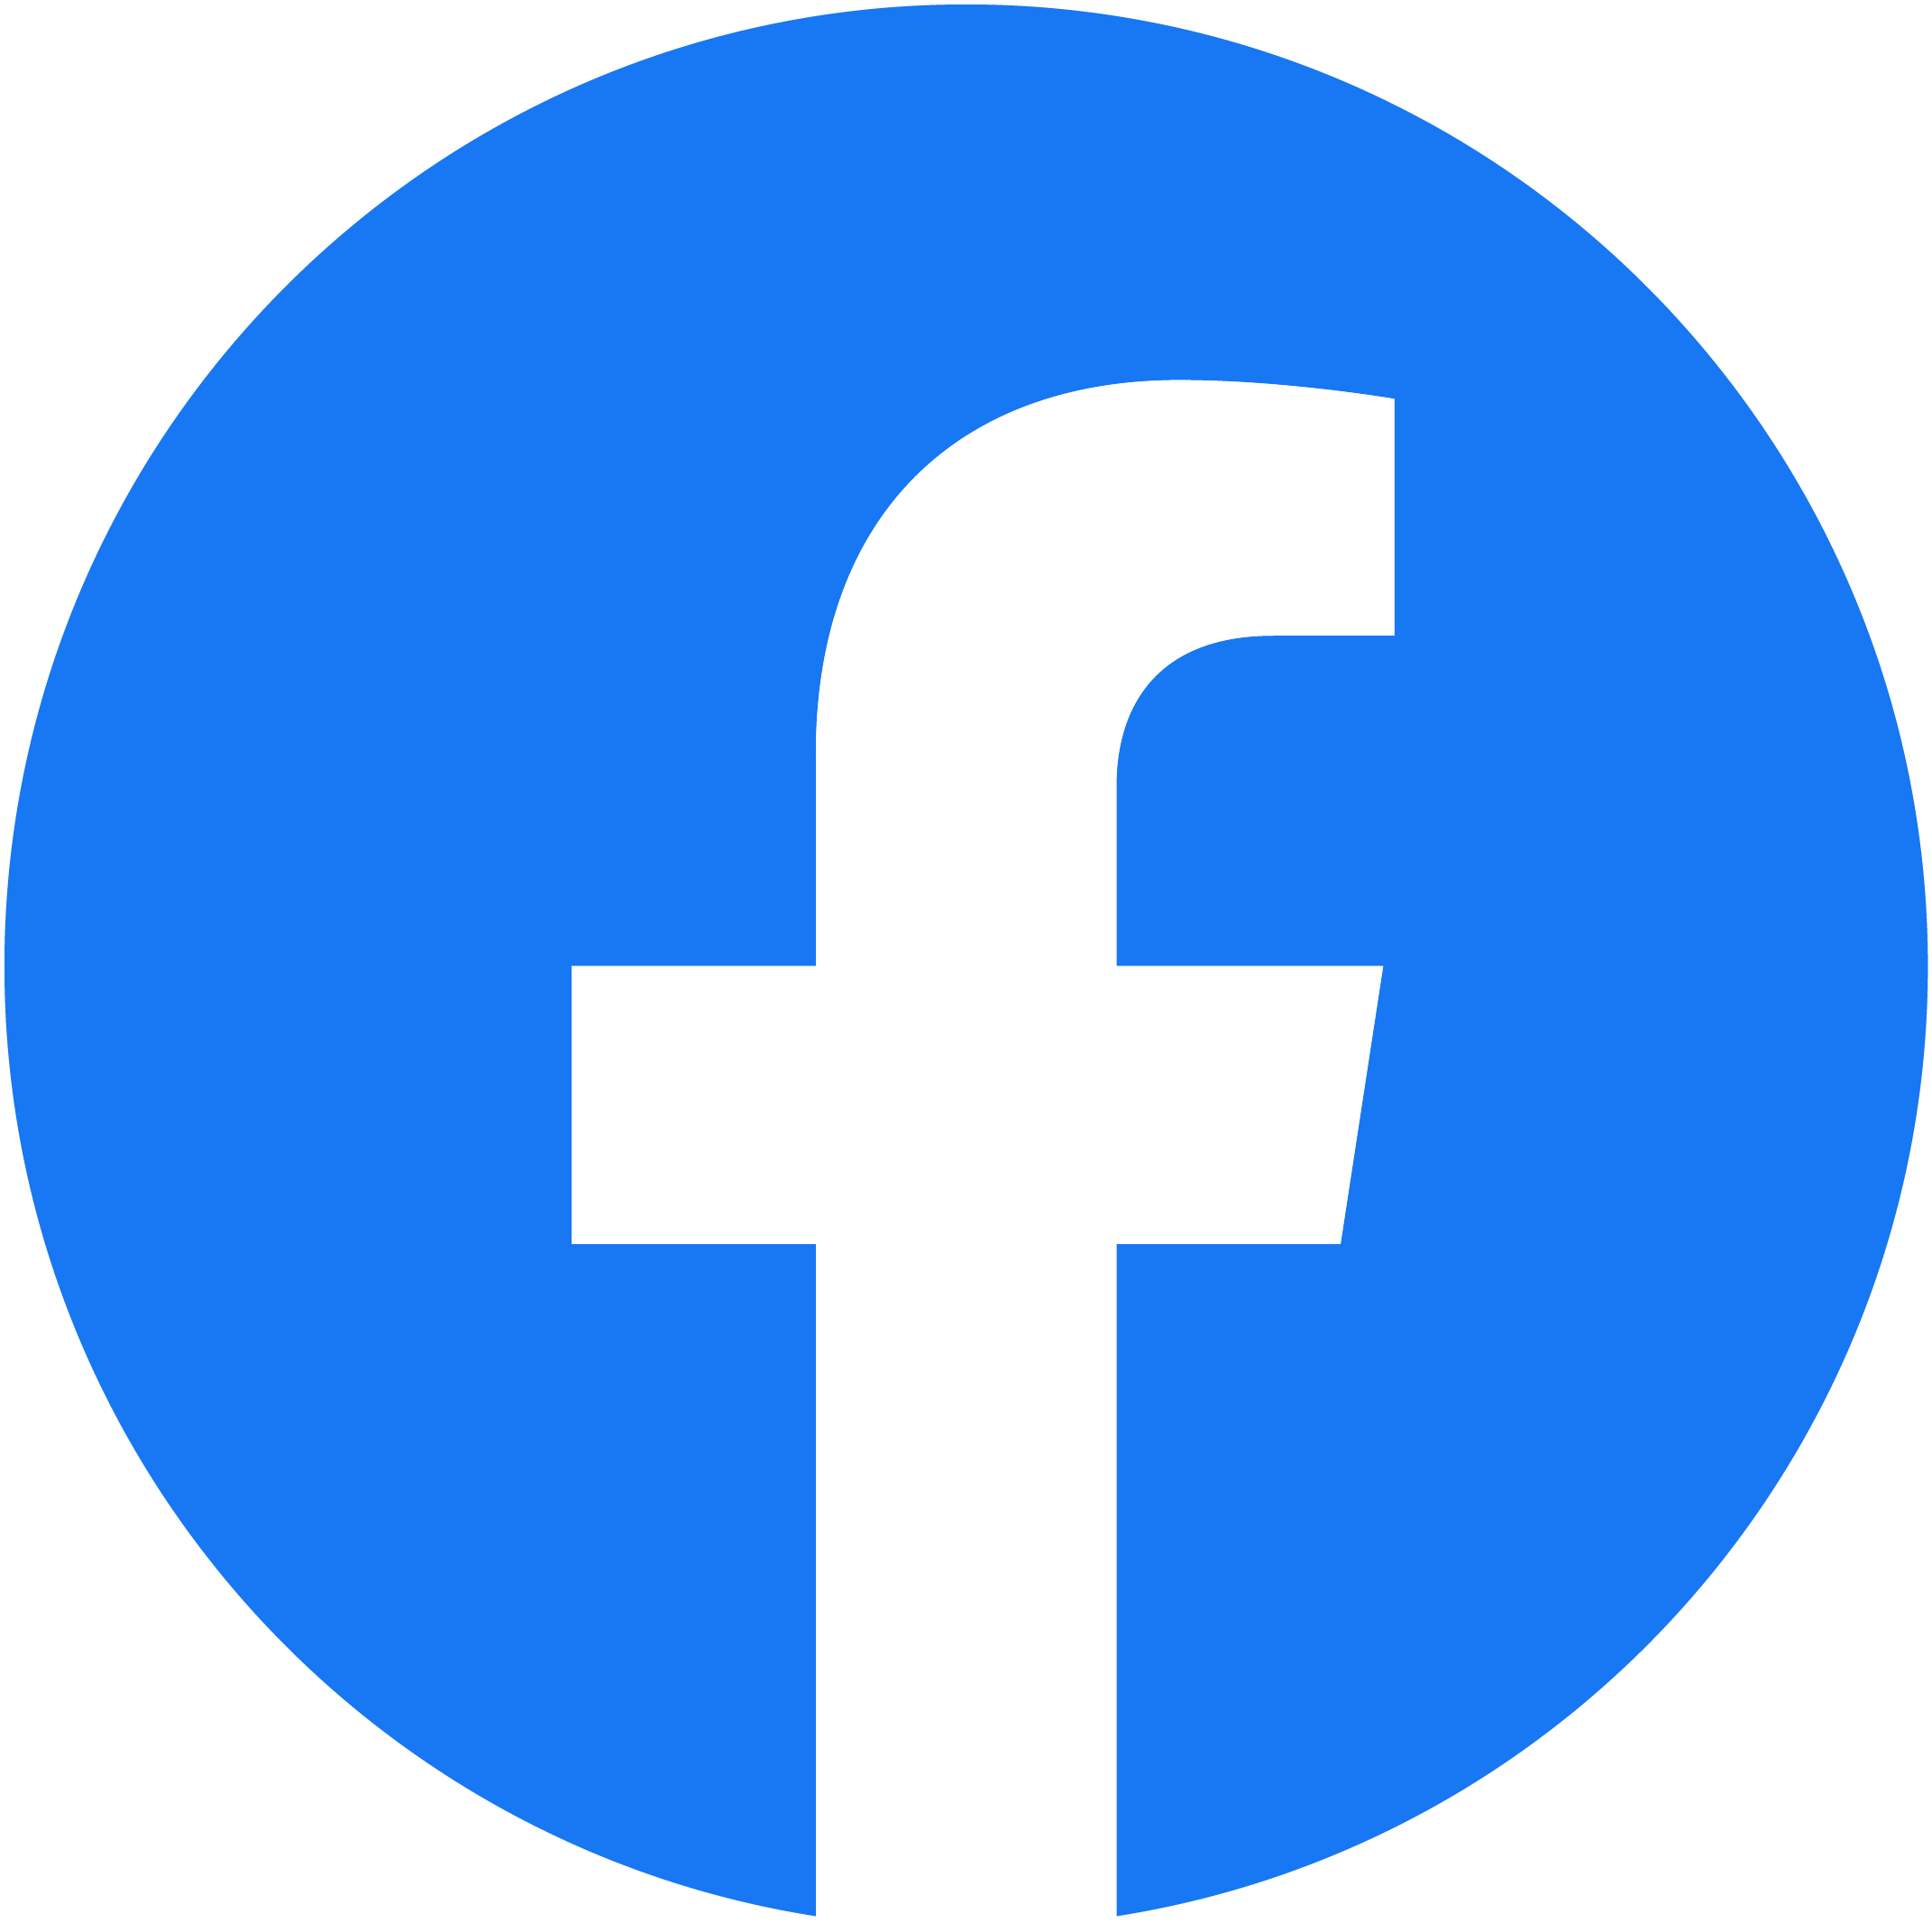 https://upload.wikimedia.org/wikipedia/commons/0/05/Facebook_Logo_%282019%29.png